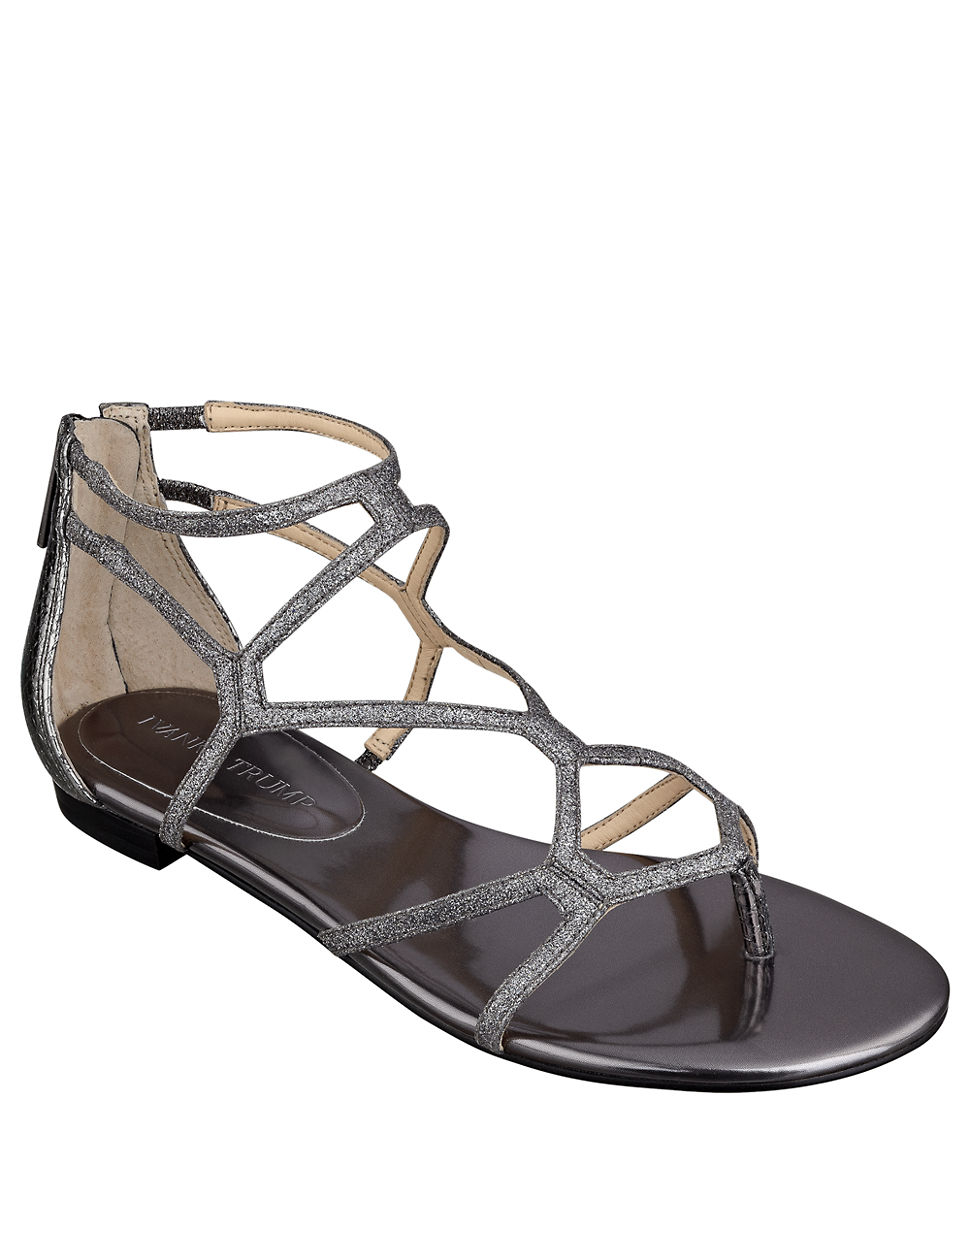 Ivanka trump Beauty Caged Sandals in Metallic | Lyst